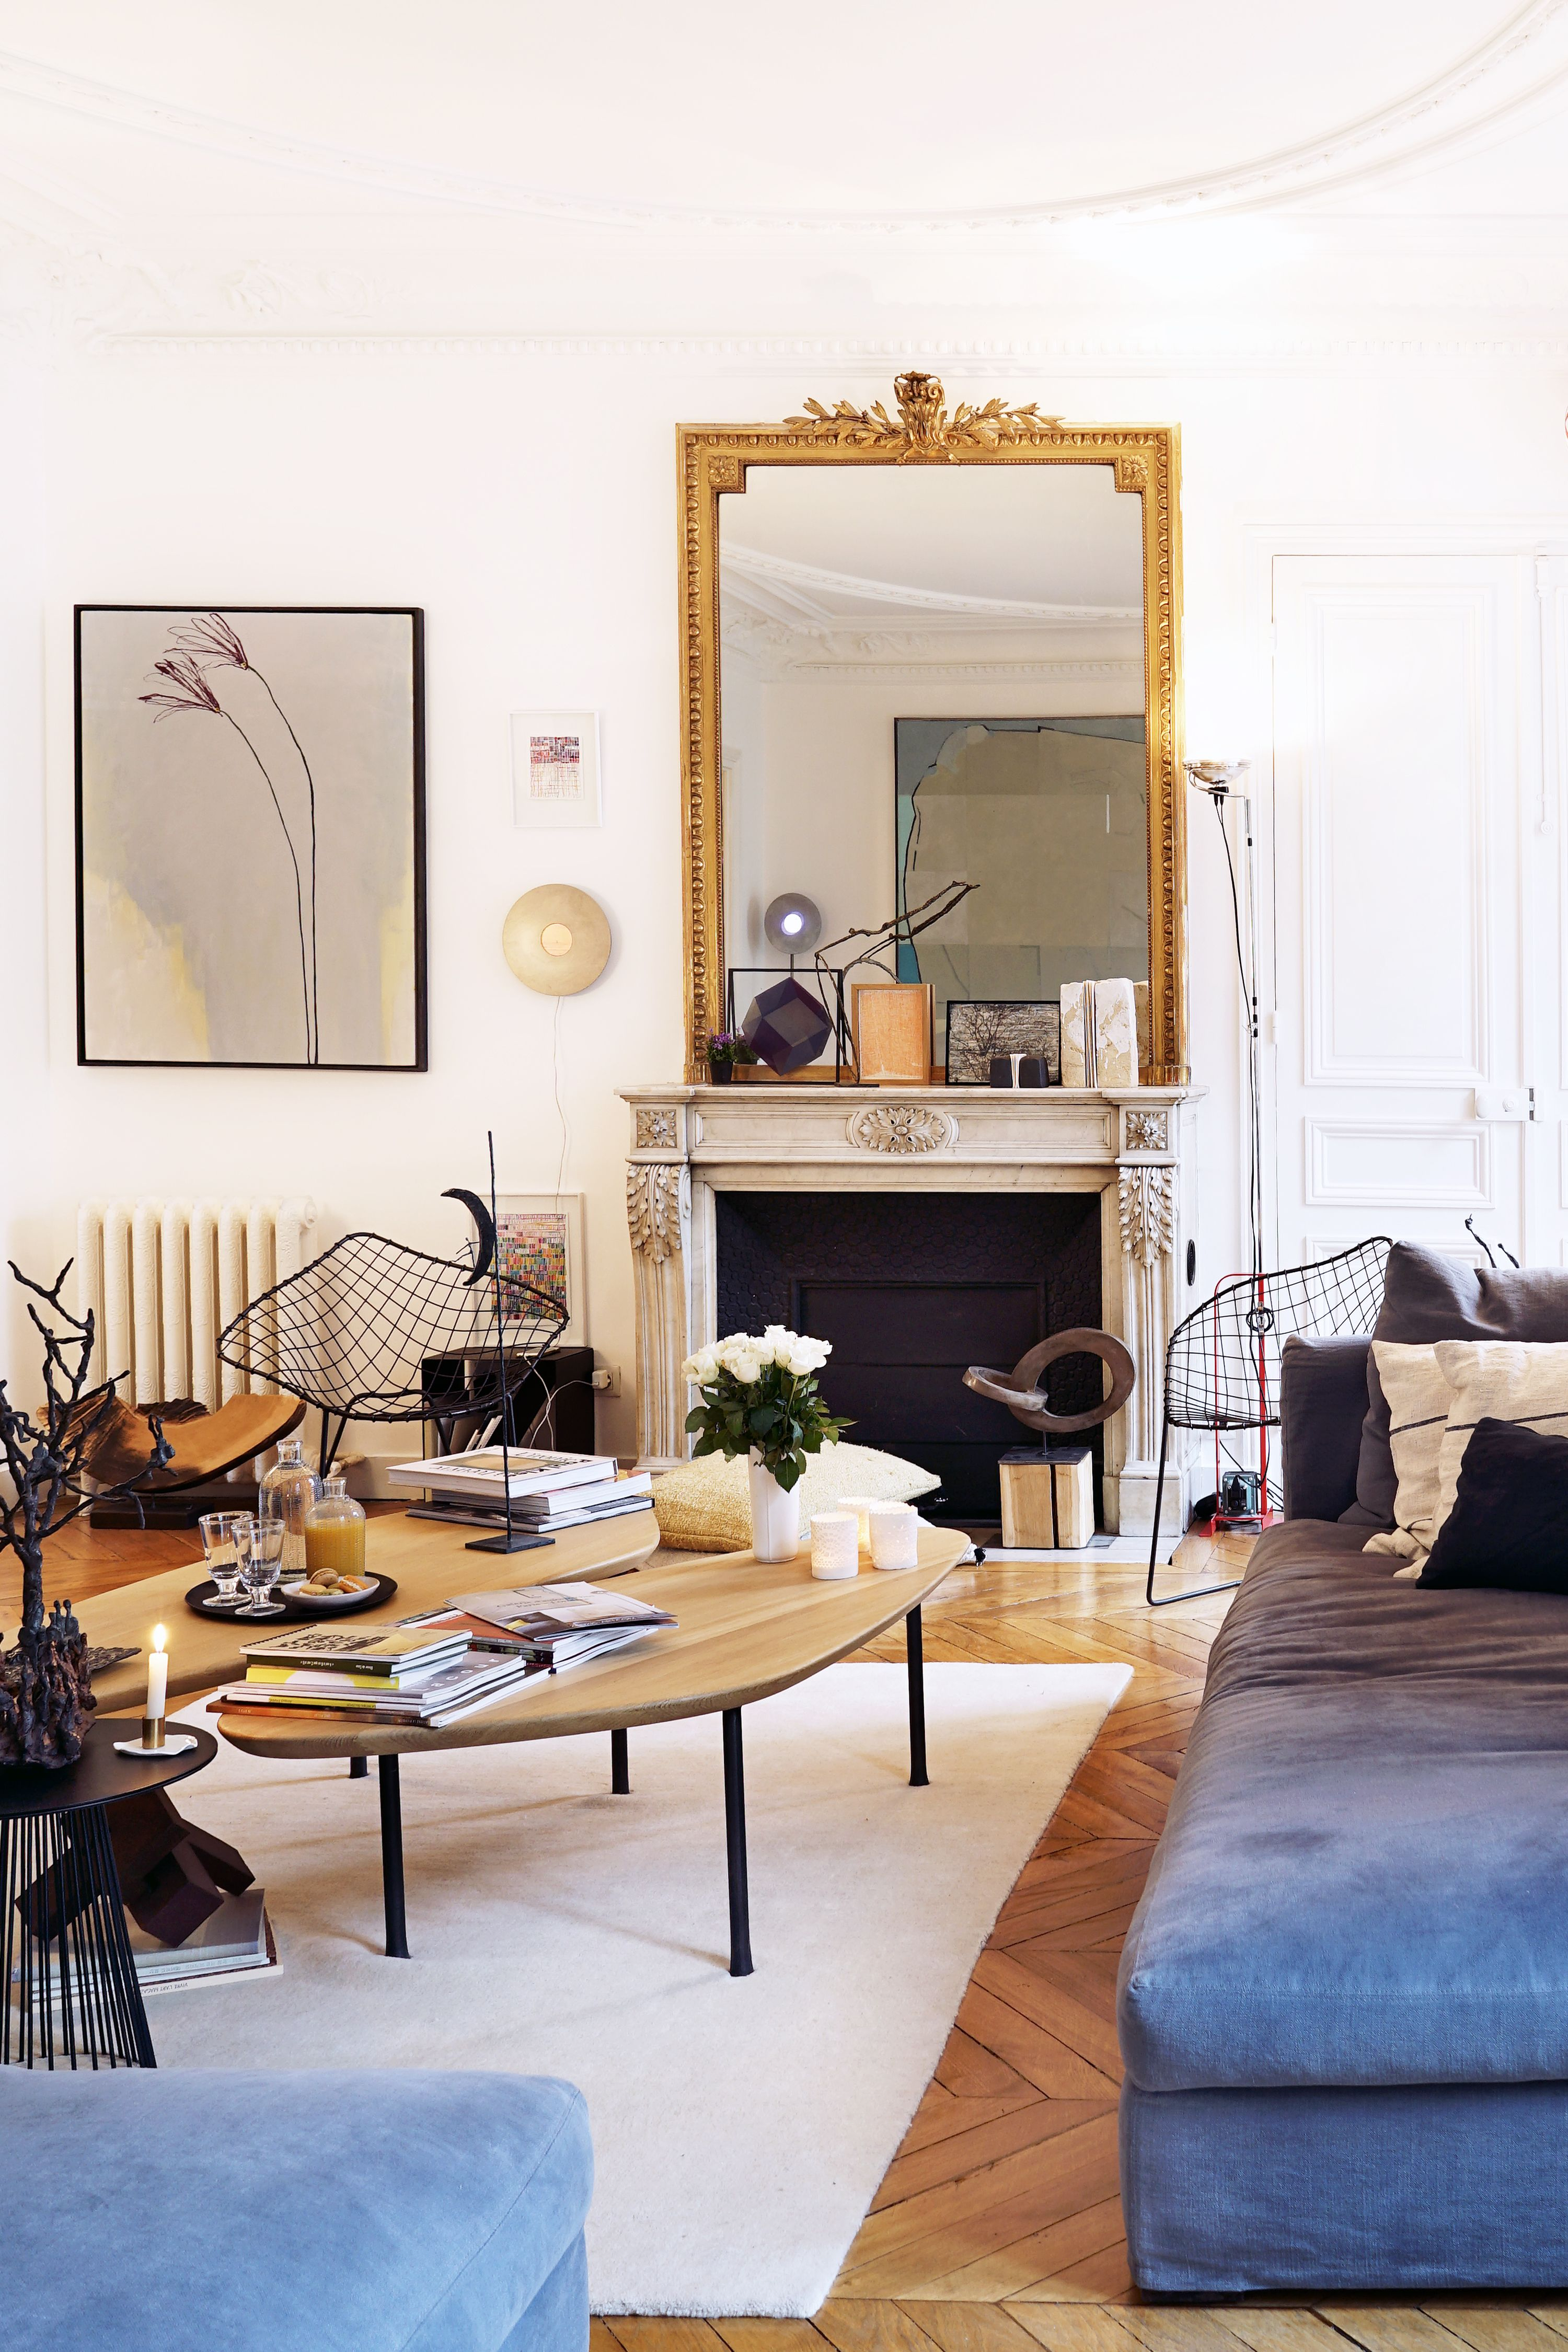 deco art achieving do designers where interior parisian the pin henderson lighting style buy emily